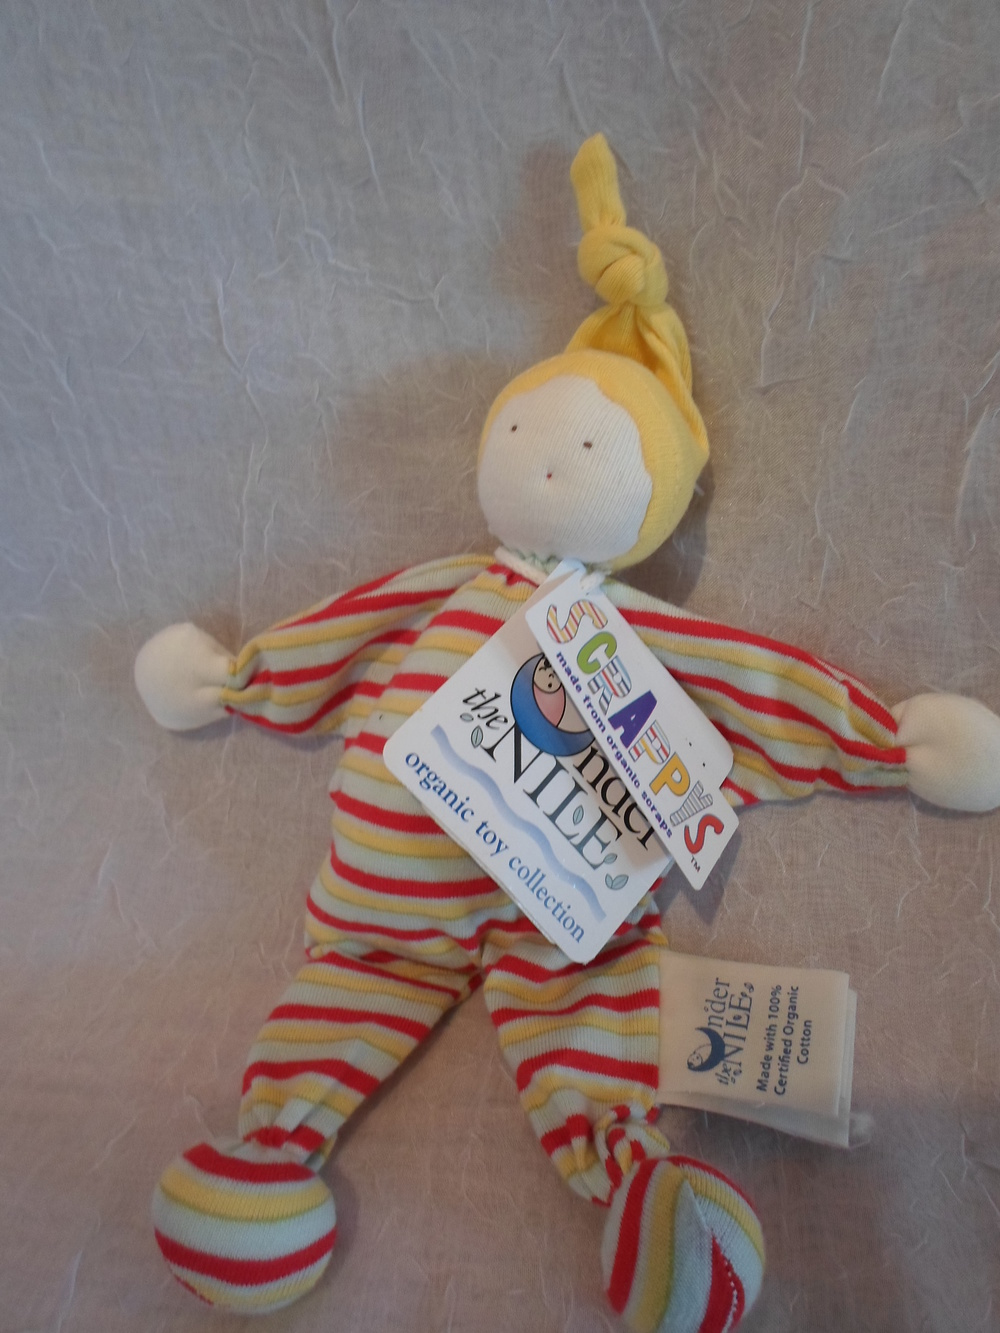 Under The Nile Organic Scrappys Doll $9.95 Wants 1 PURCHASED